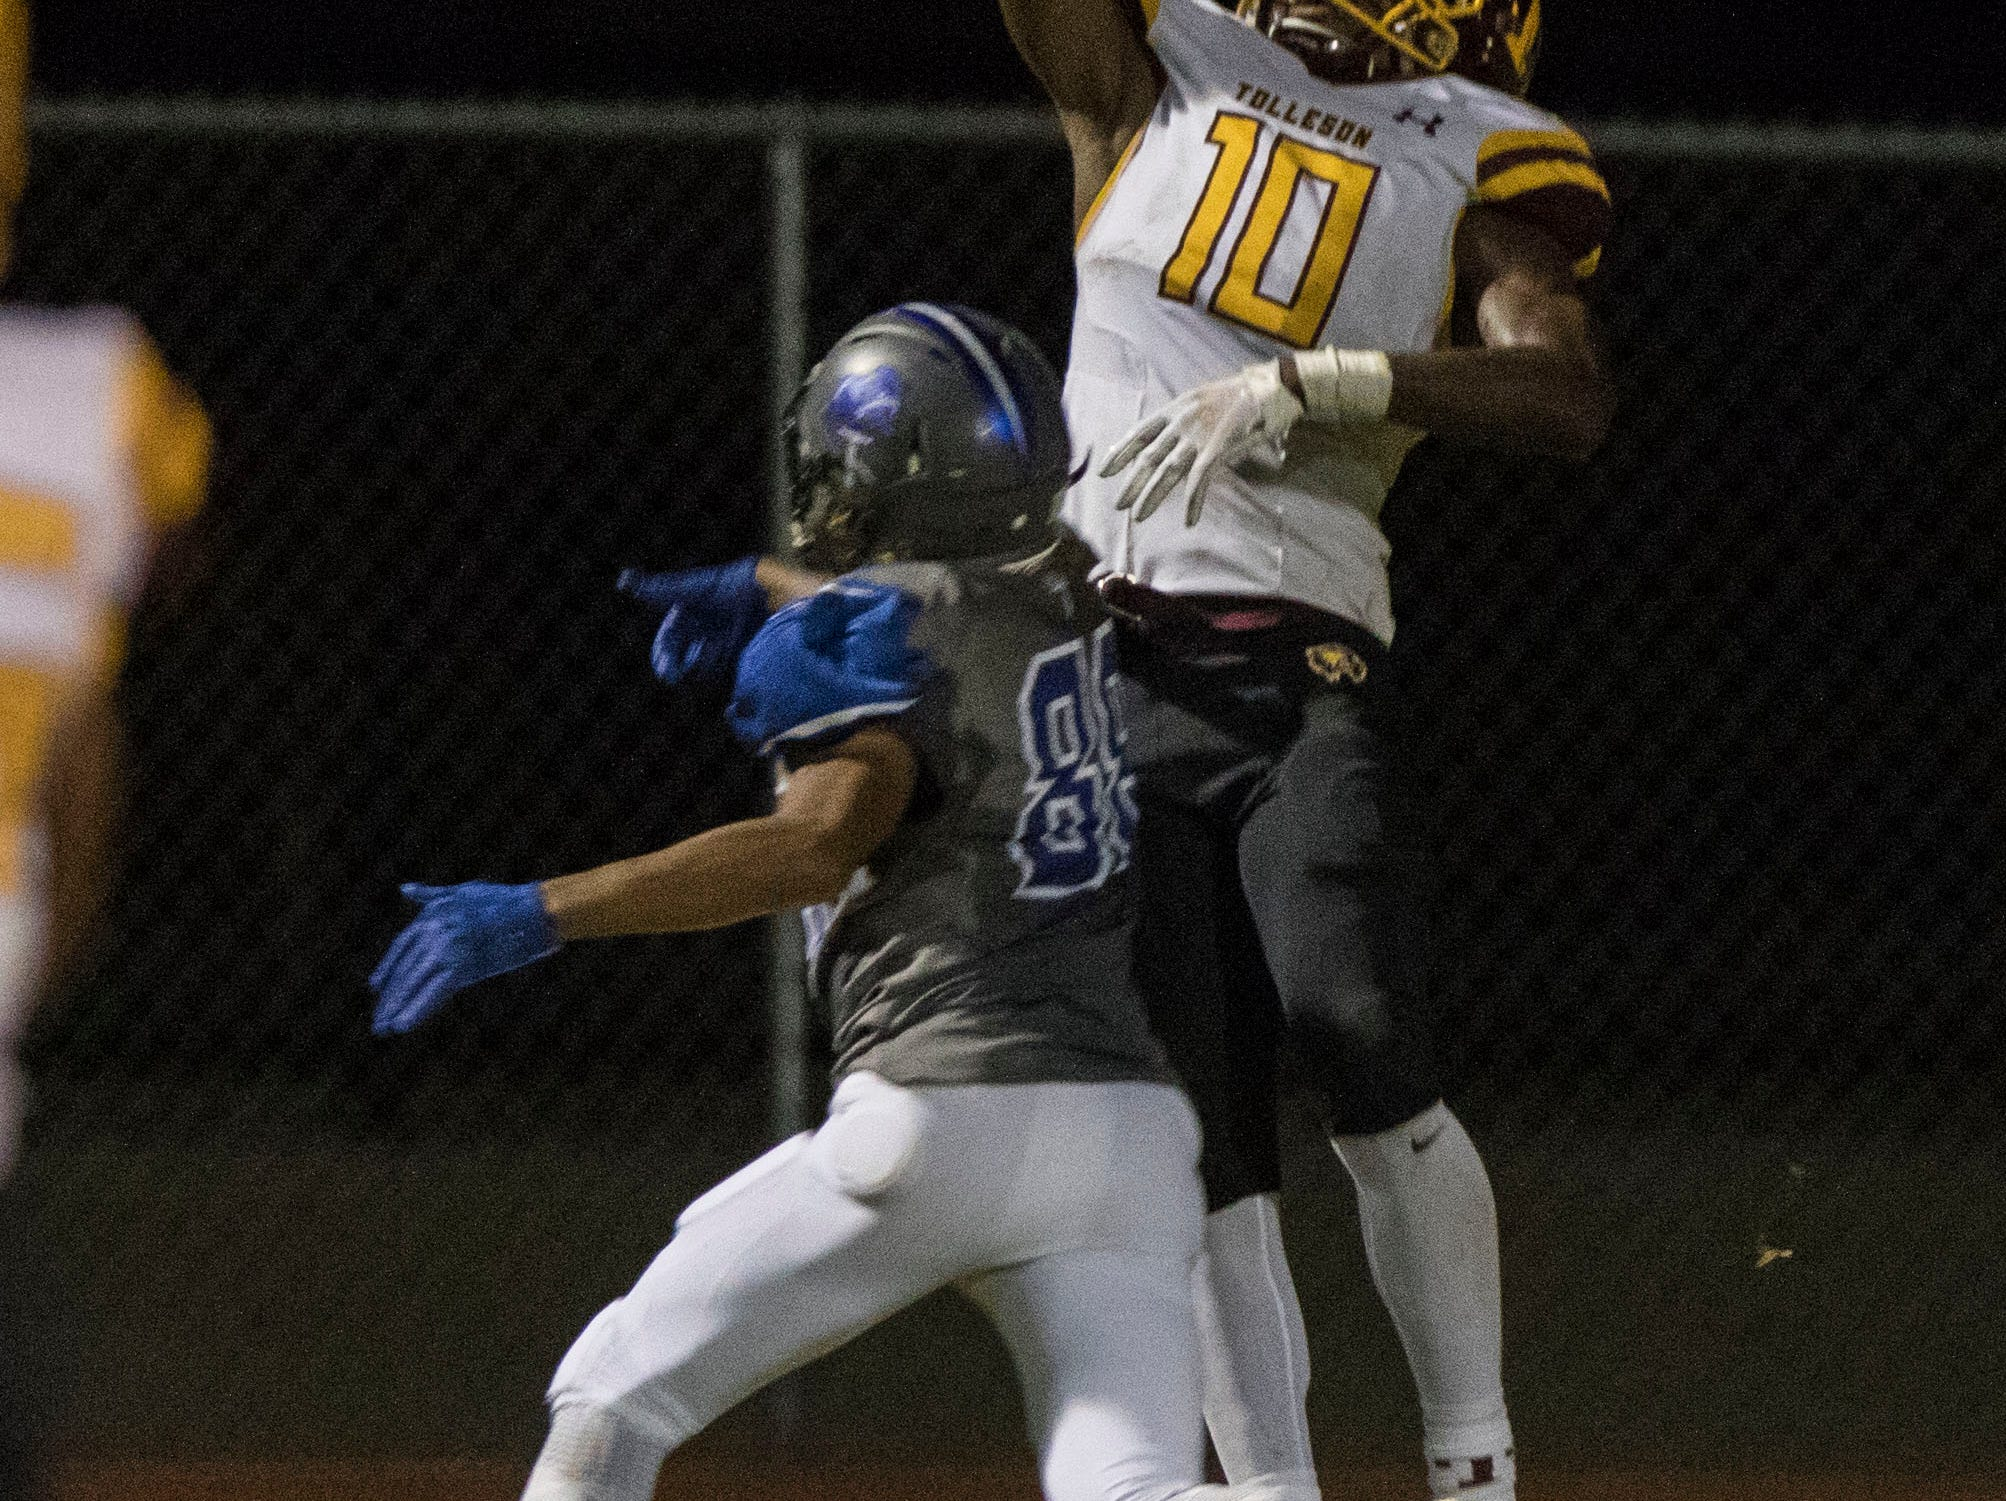 Tolleson's Andre Johnson leaps for the ball but couldn't come down with it against Westview's DHayven Valentine in Avondale Friday, Sept. 28, 2018. #azhsfb